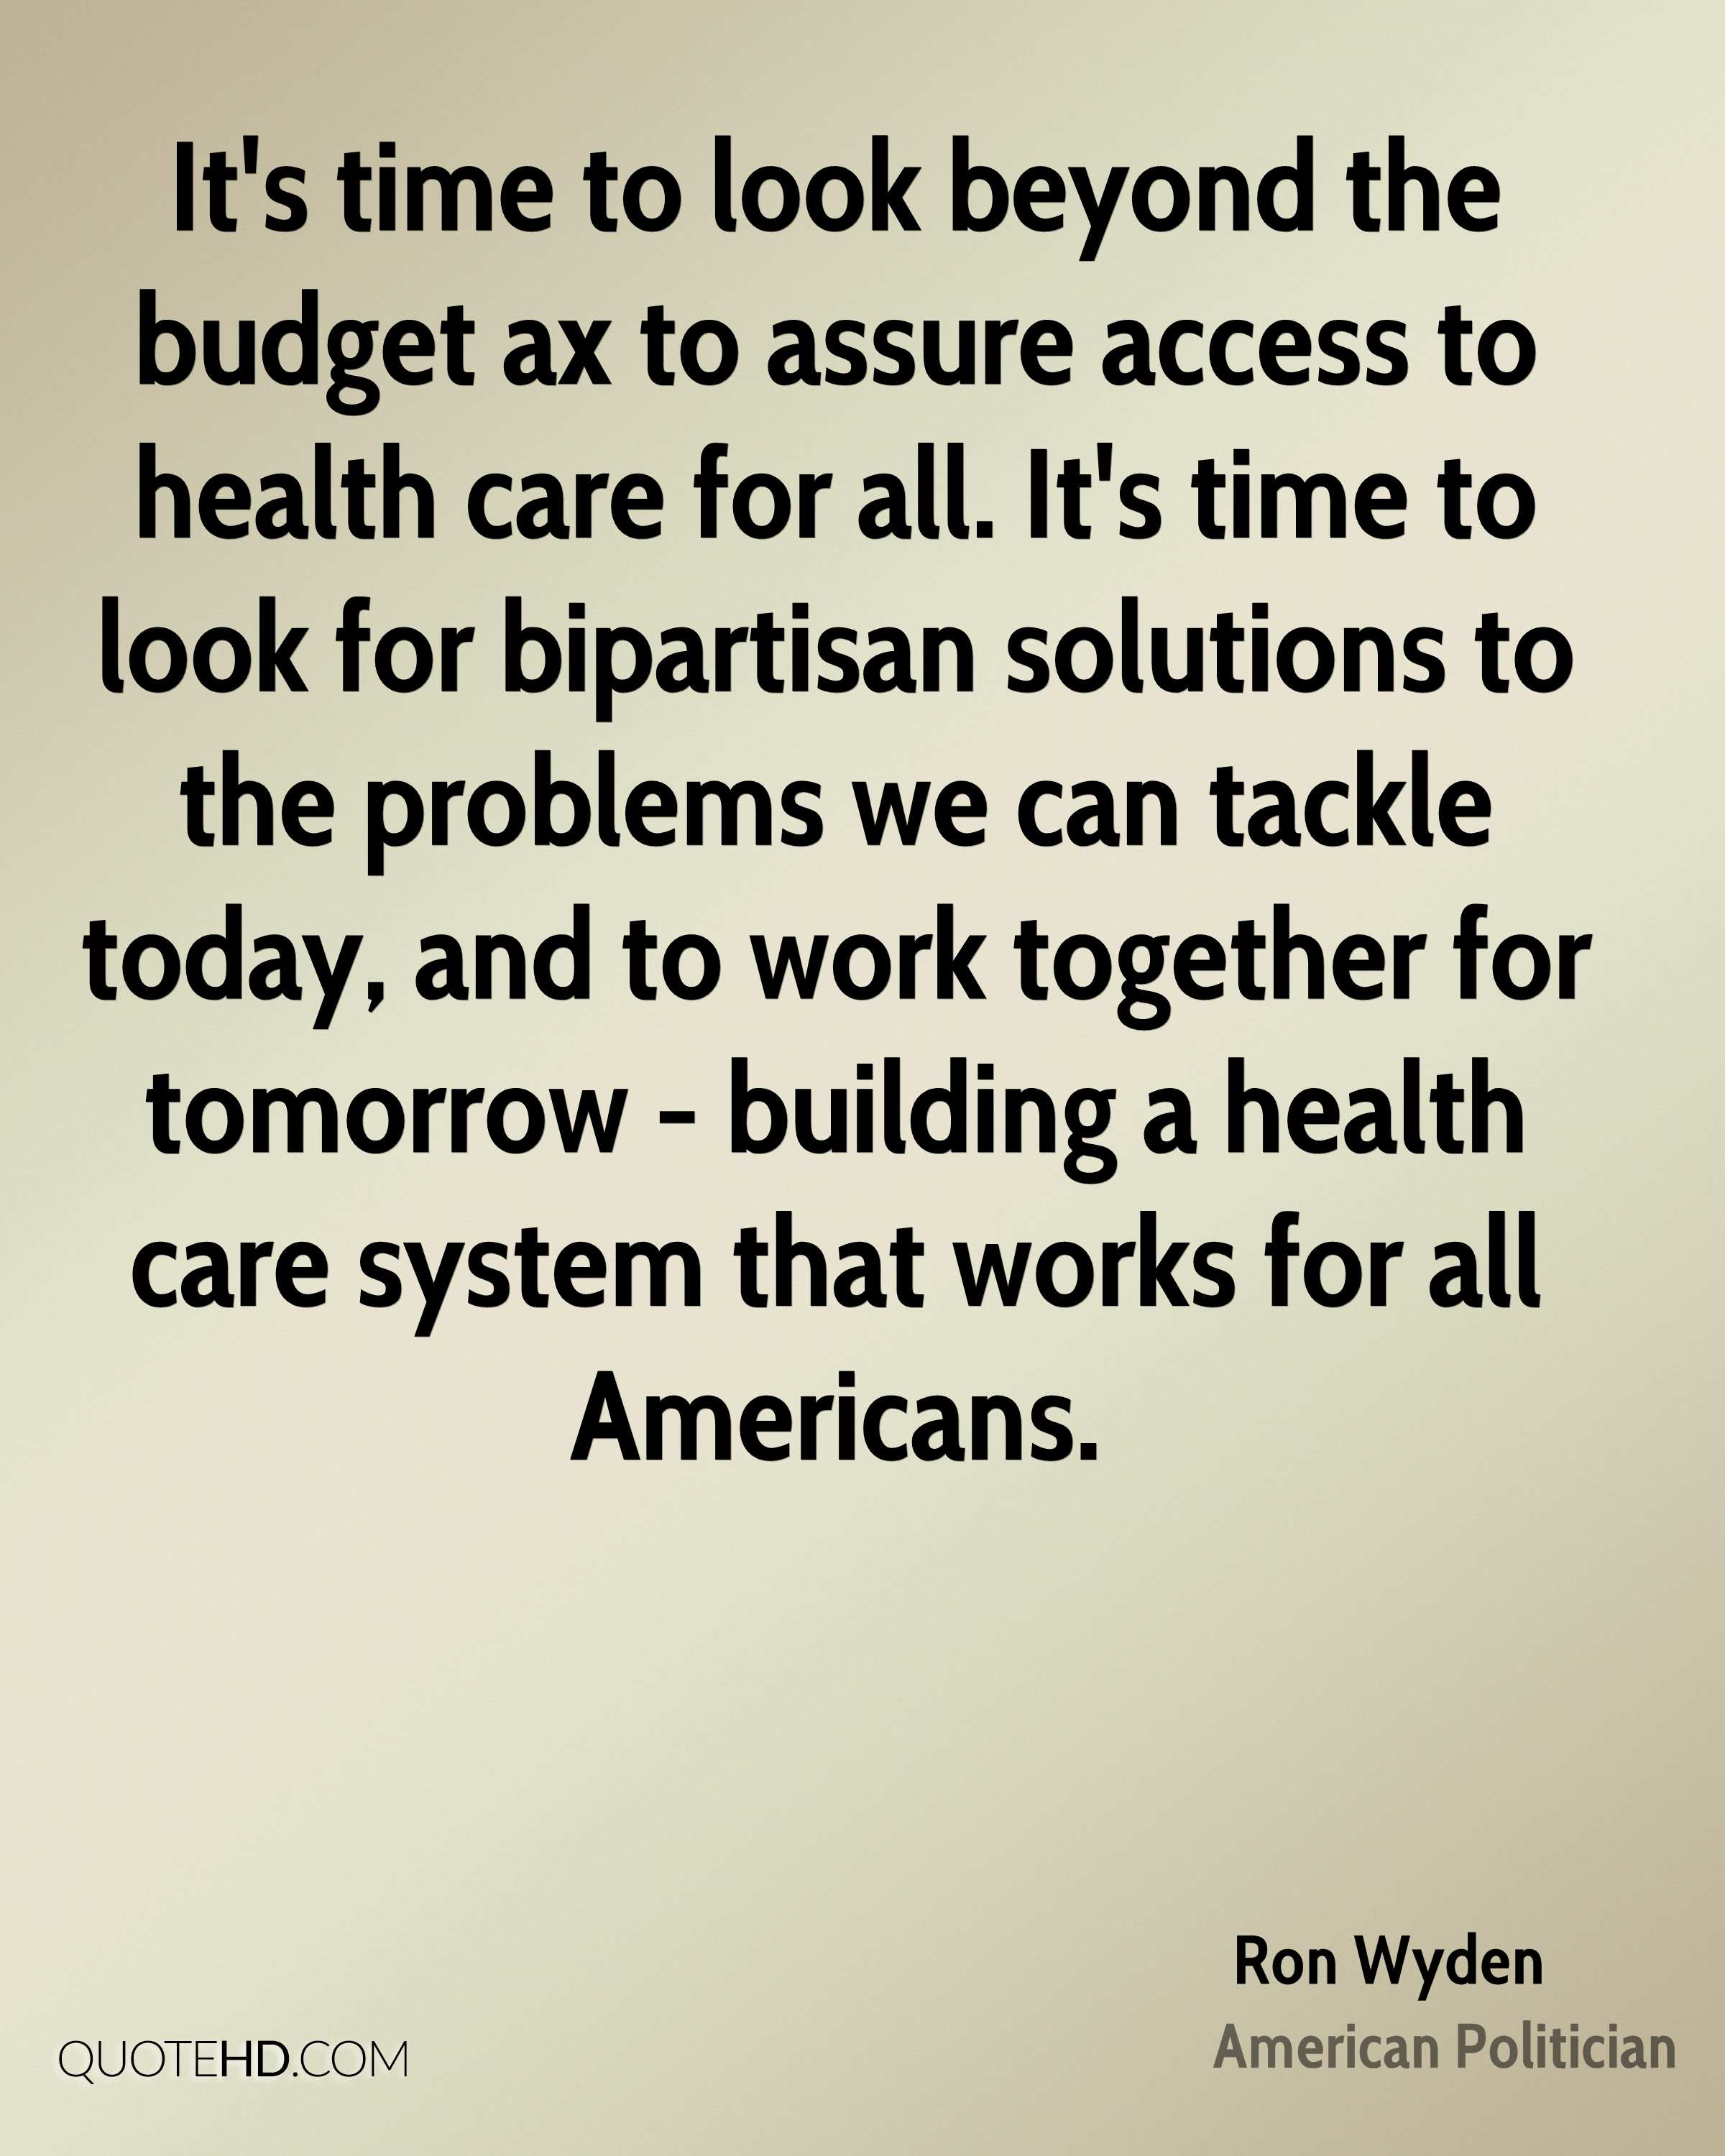 It's time to look beyond the budget ax to assure access to health care for all. It's time to look for bipartisan solutions to the problems we can tackle today, and to work together for tomorrow - building a health care system that works for all Americans.